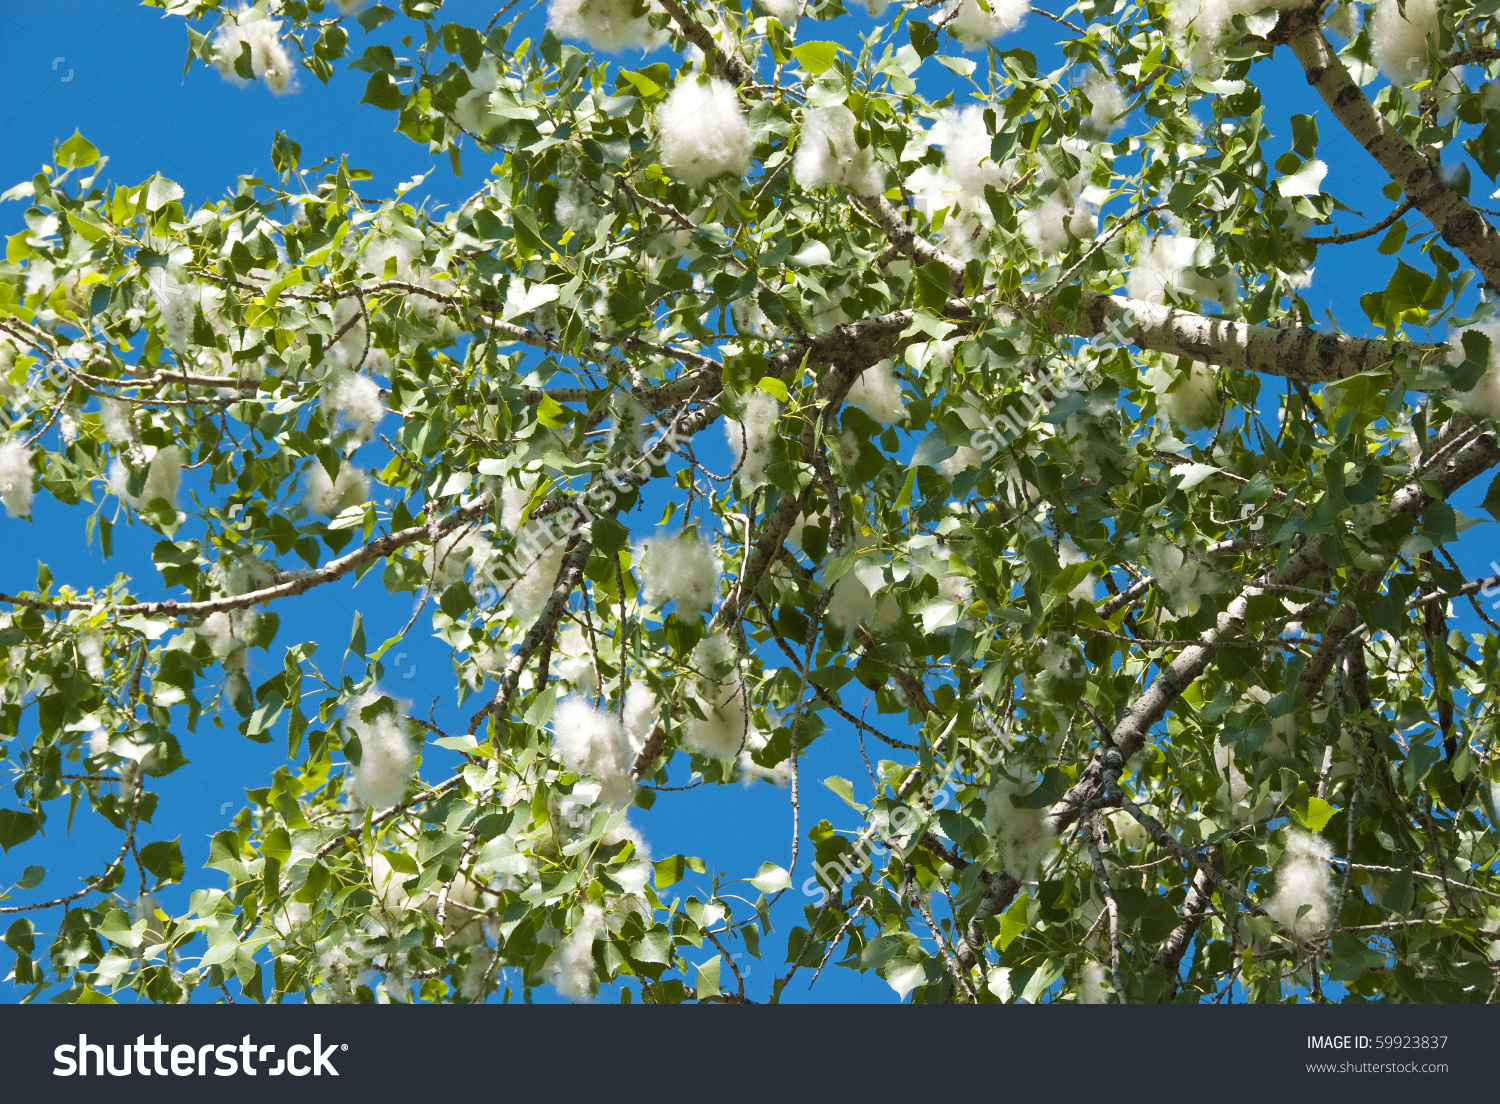 Cottonwood Trees clipart #2, Download drawings